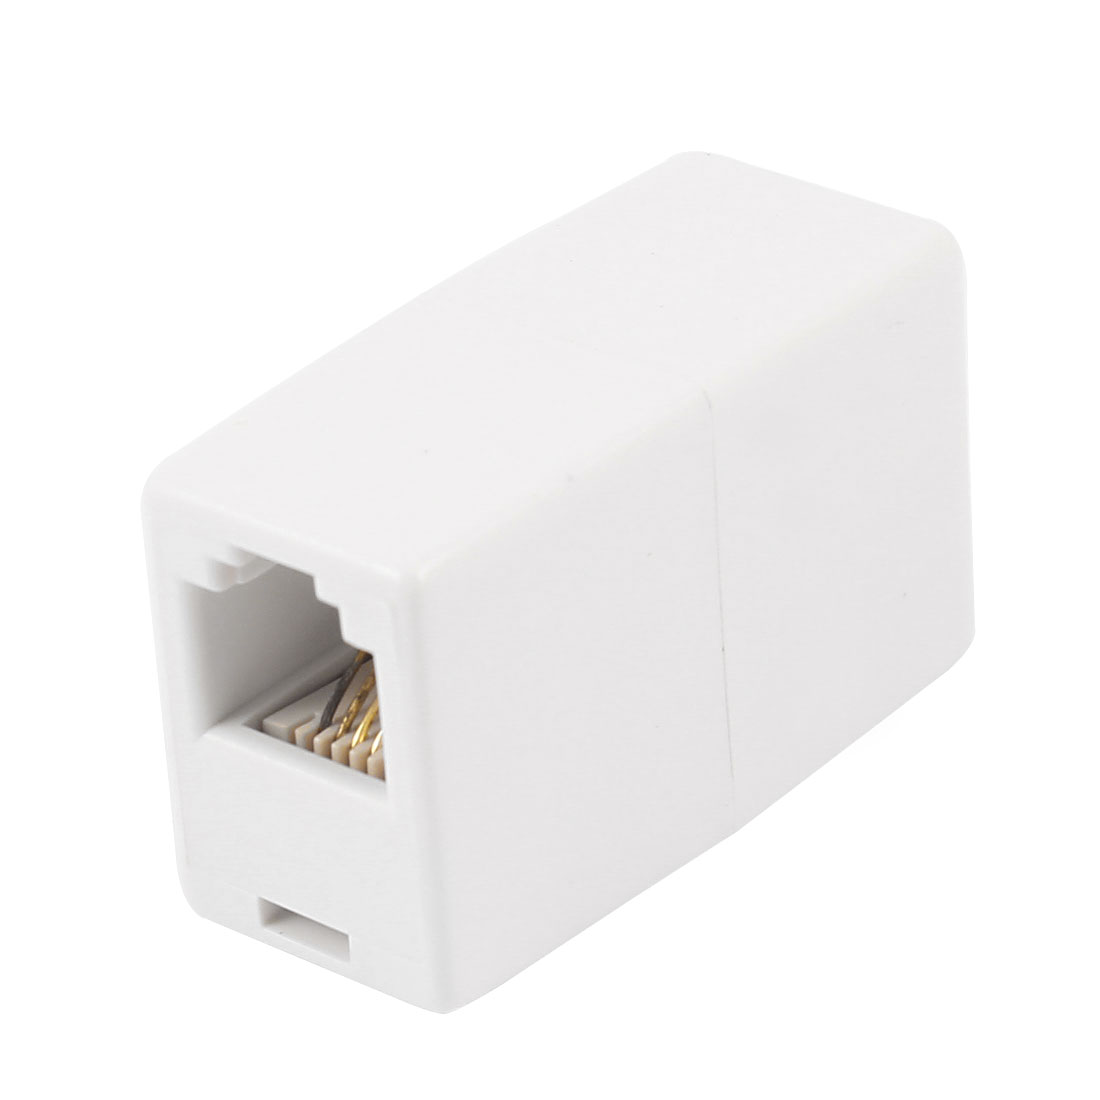 6P4C RJ11 to RJ11 Female/Female Telephone Cable Coupler Connector White